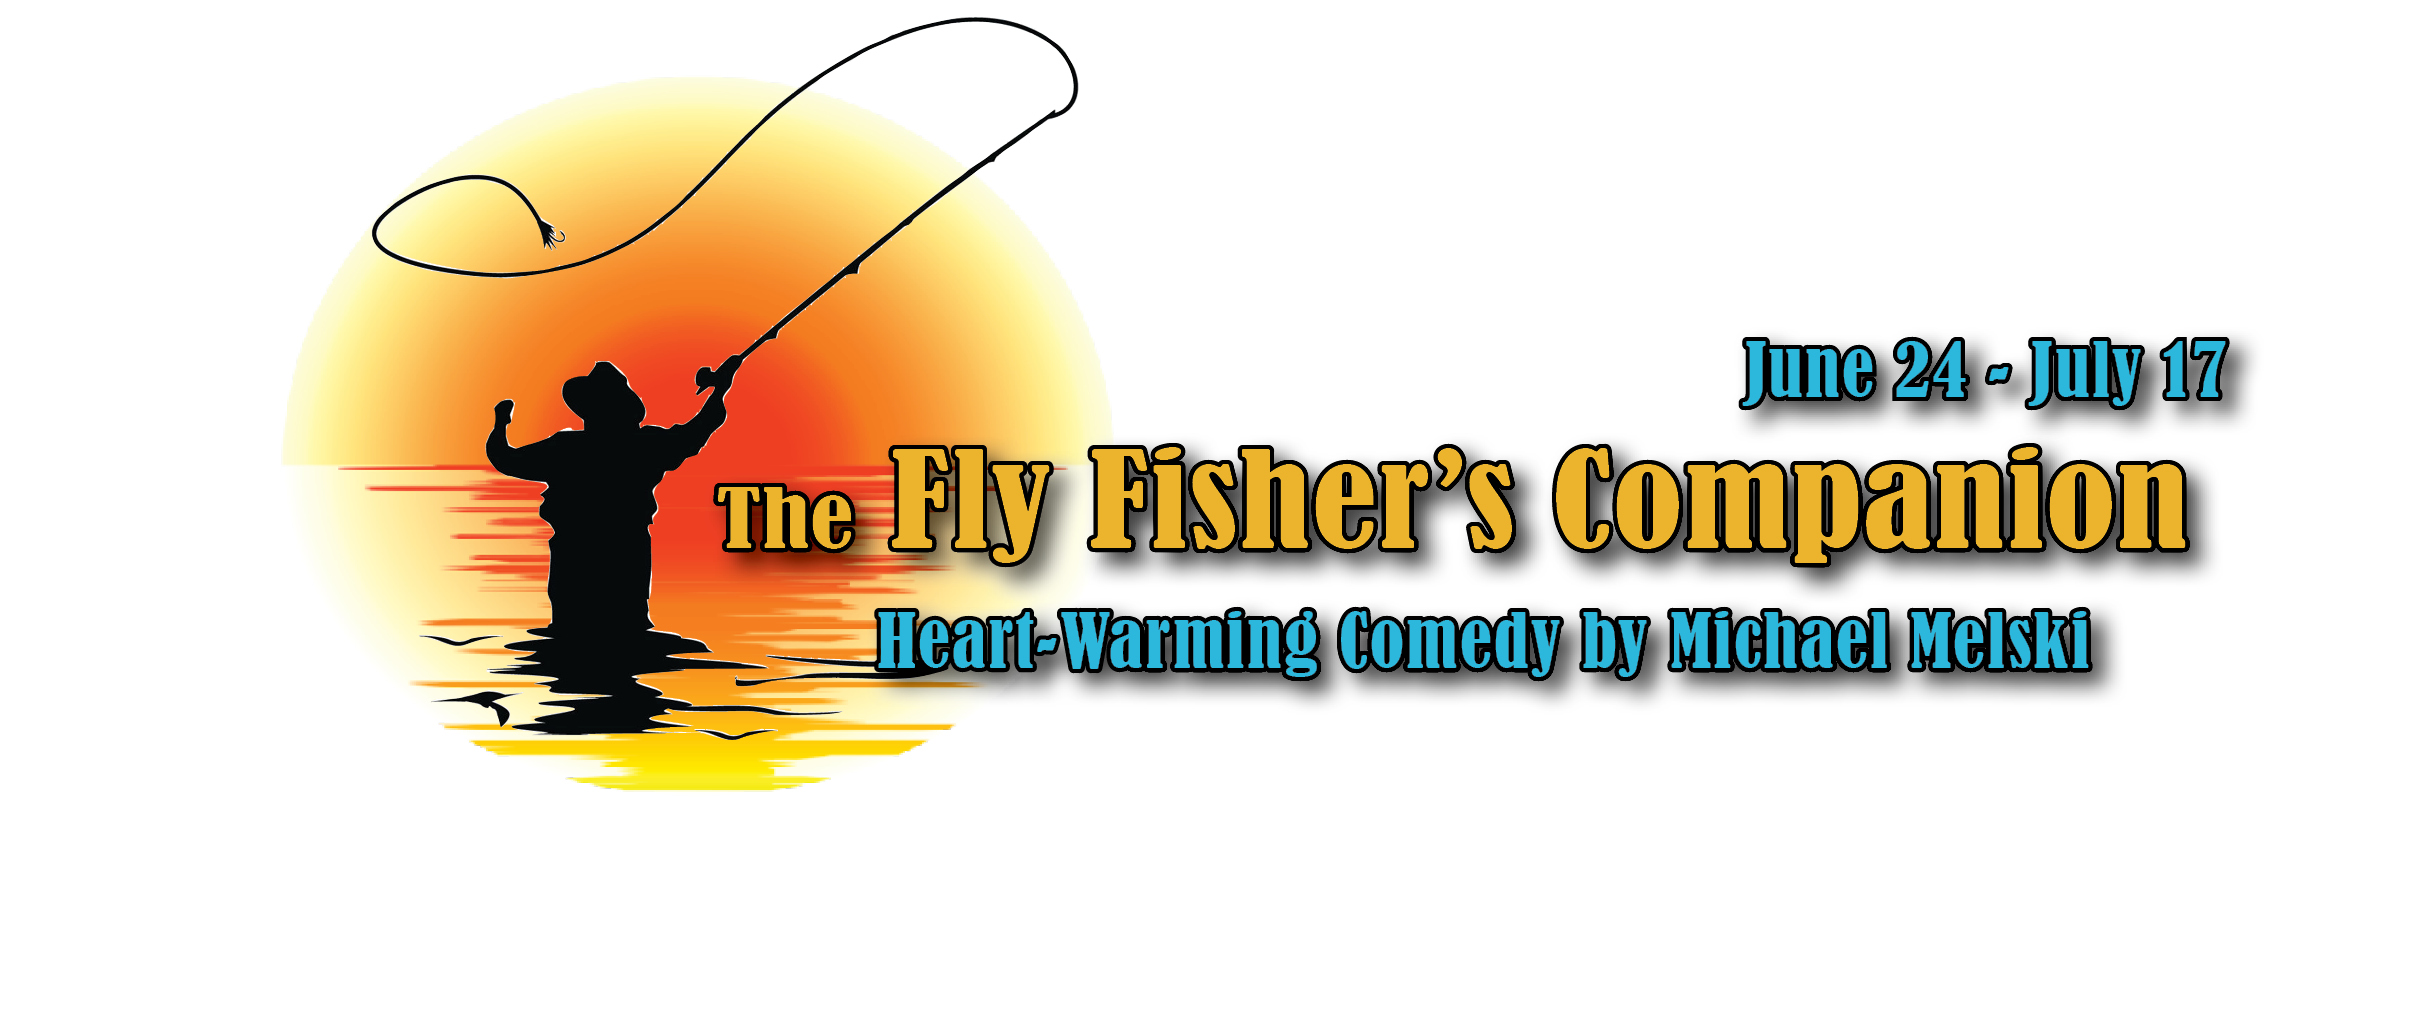 Promotional image for the upcoming production of The Fly Fisher's Companion